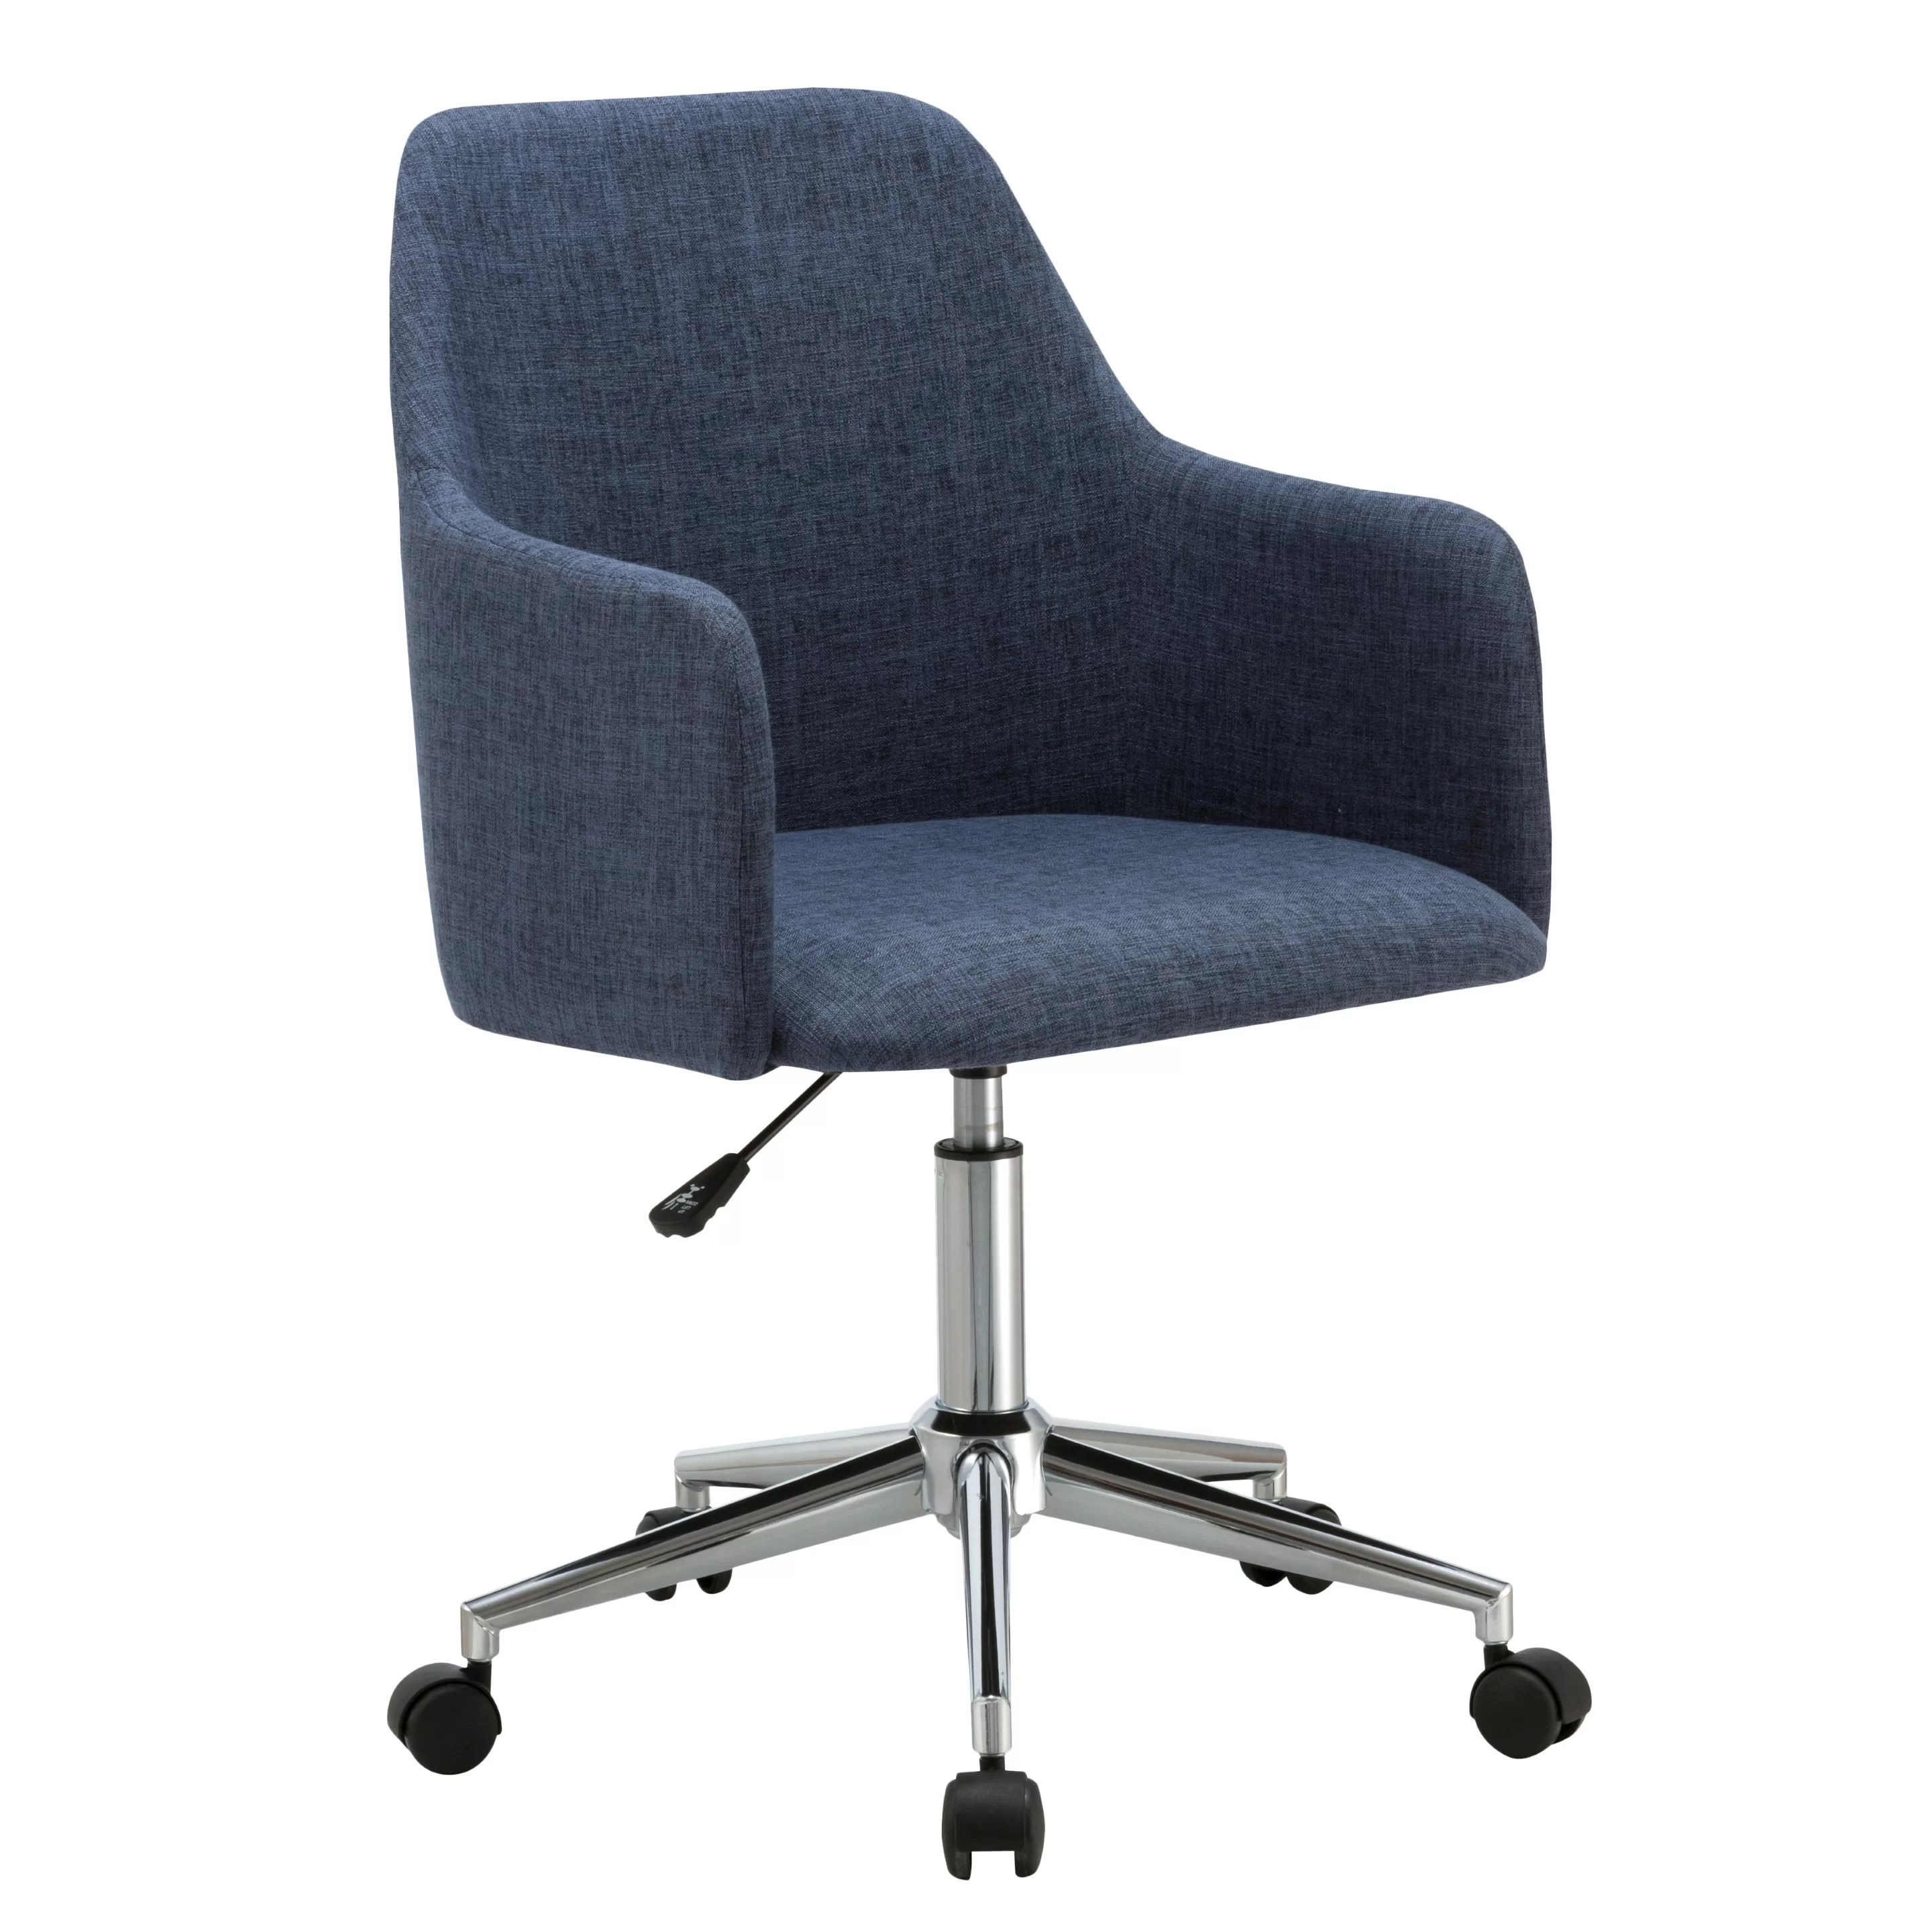 casters for chairs on carpet disability electric chair desk hostgarcia